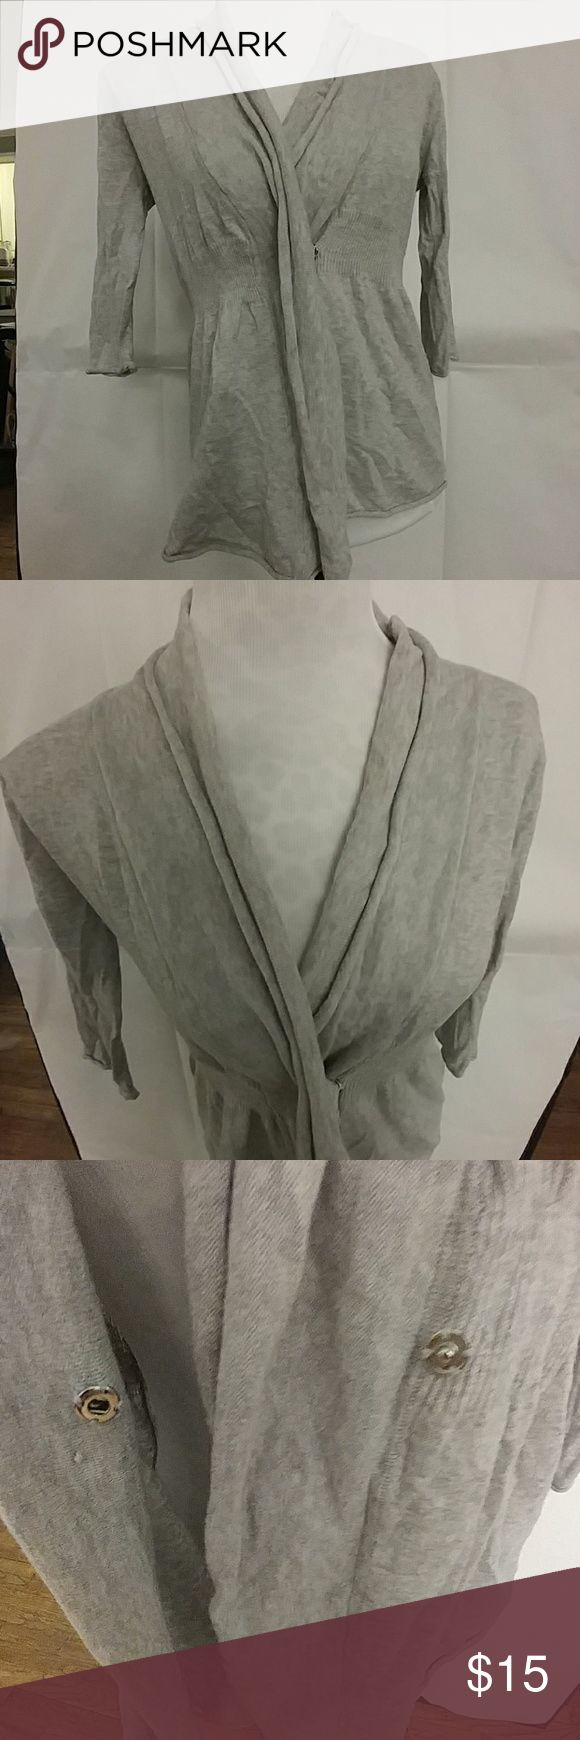 Zara gray shawl collar cardigan Gray shawl collar cardigan by Zara.  Has one snap closure in front and gathers across the back waist.  Sleeves are 3/4 length.  In excellent used condition (no rips, tears, or stains.) Zara Sweaters Cardigans